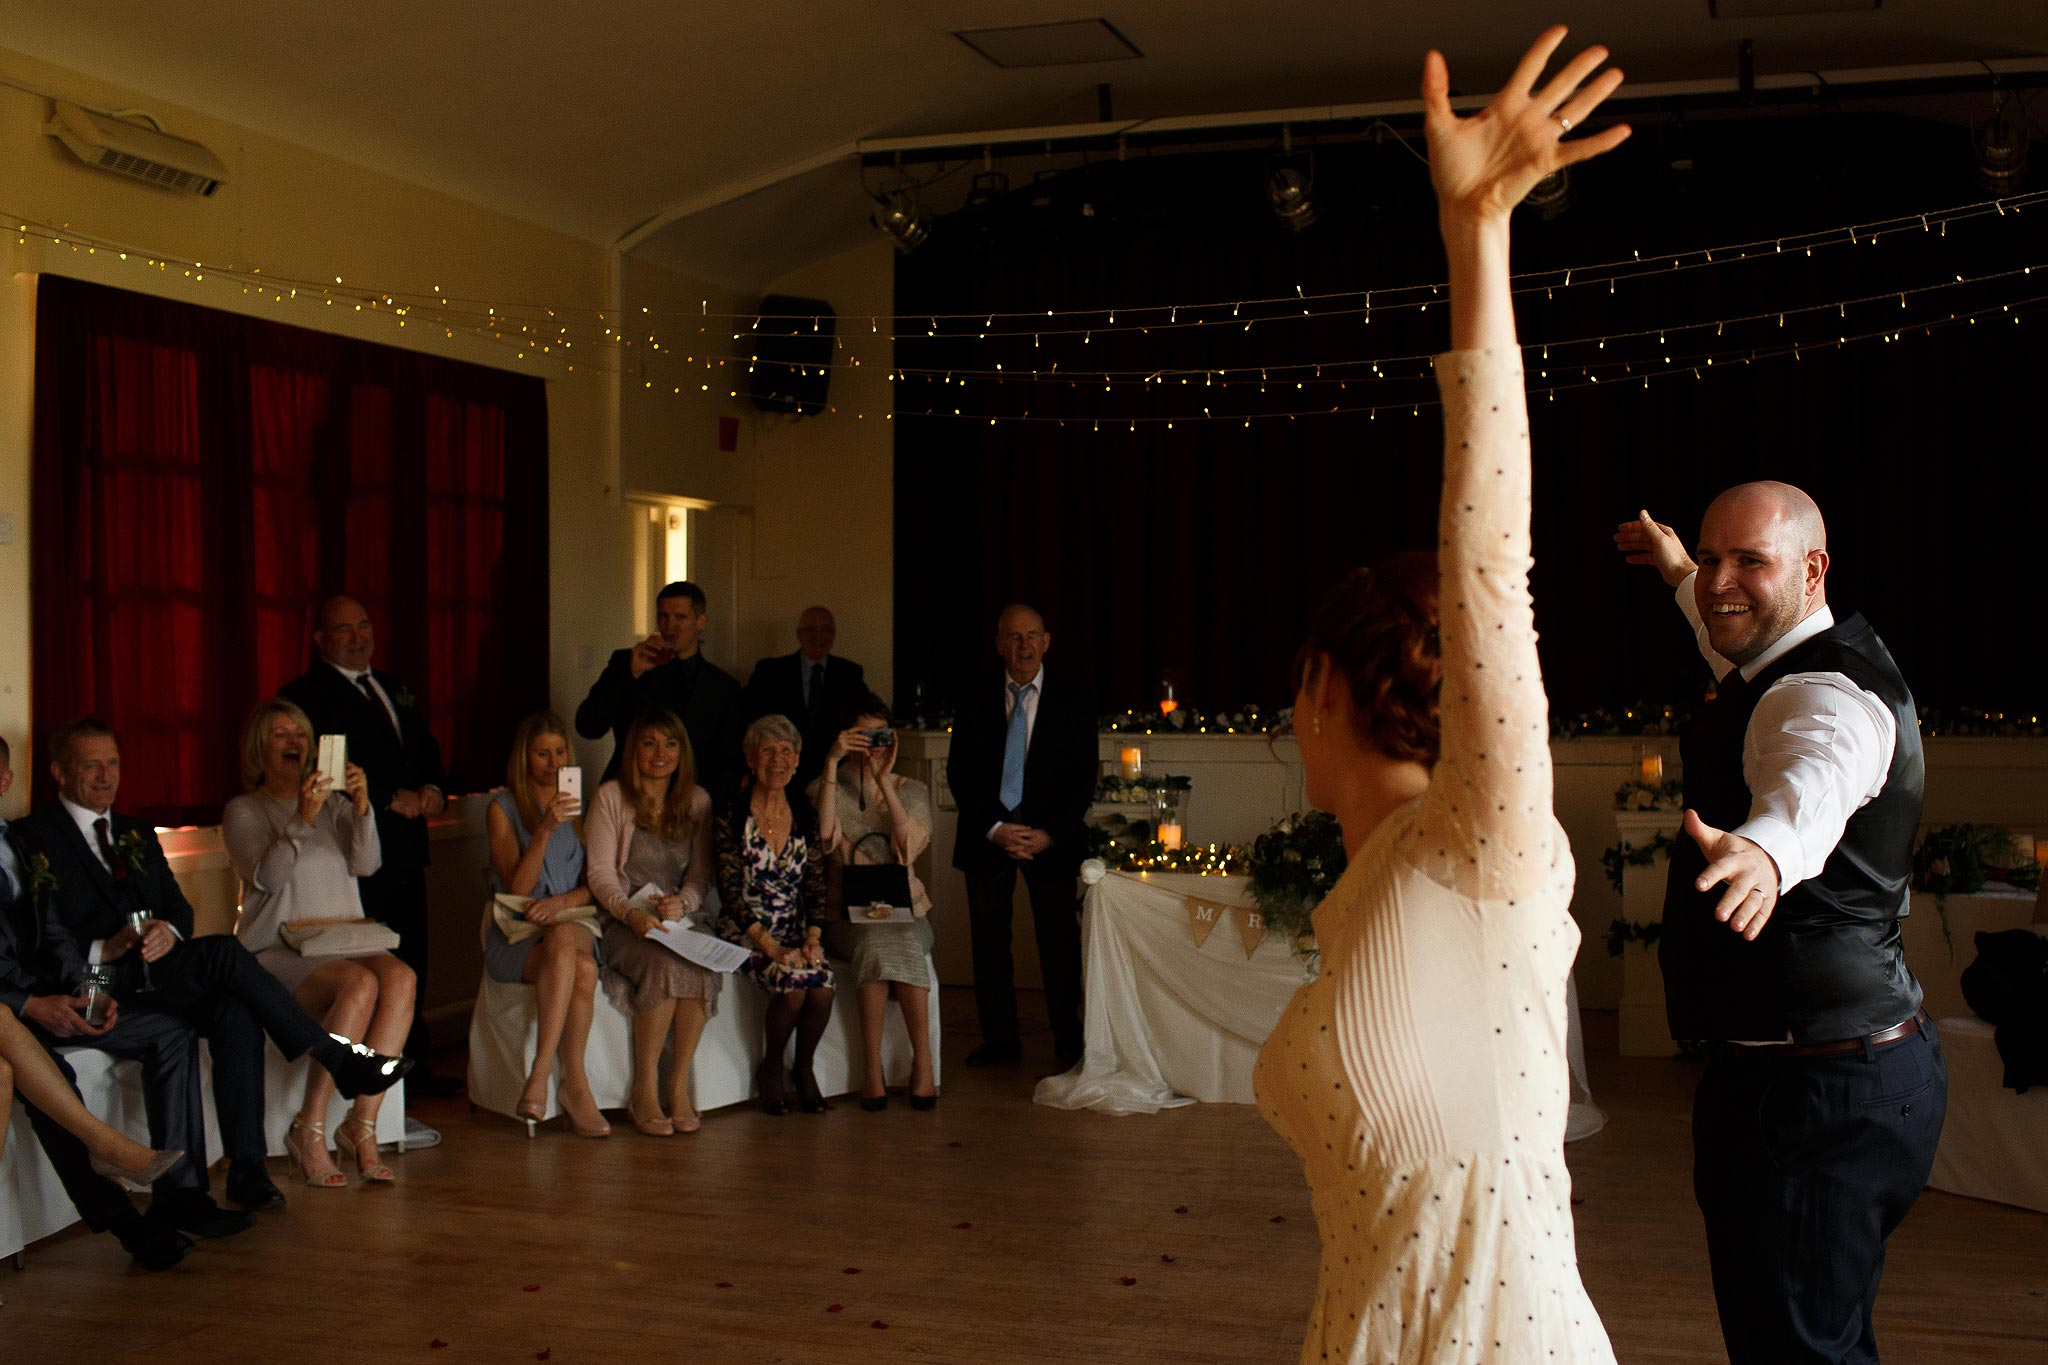 Bride and groom performing a rehearsed first dance at Downham Village Hall wedding